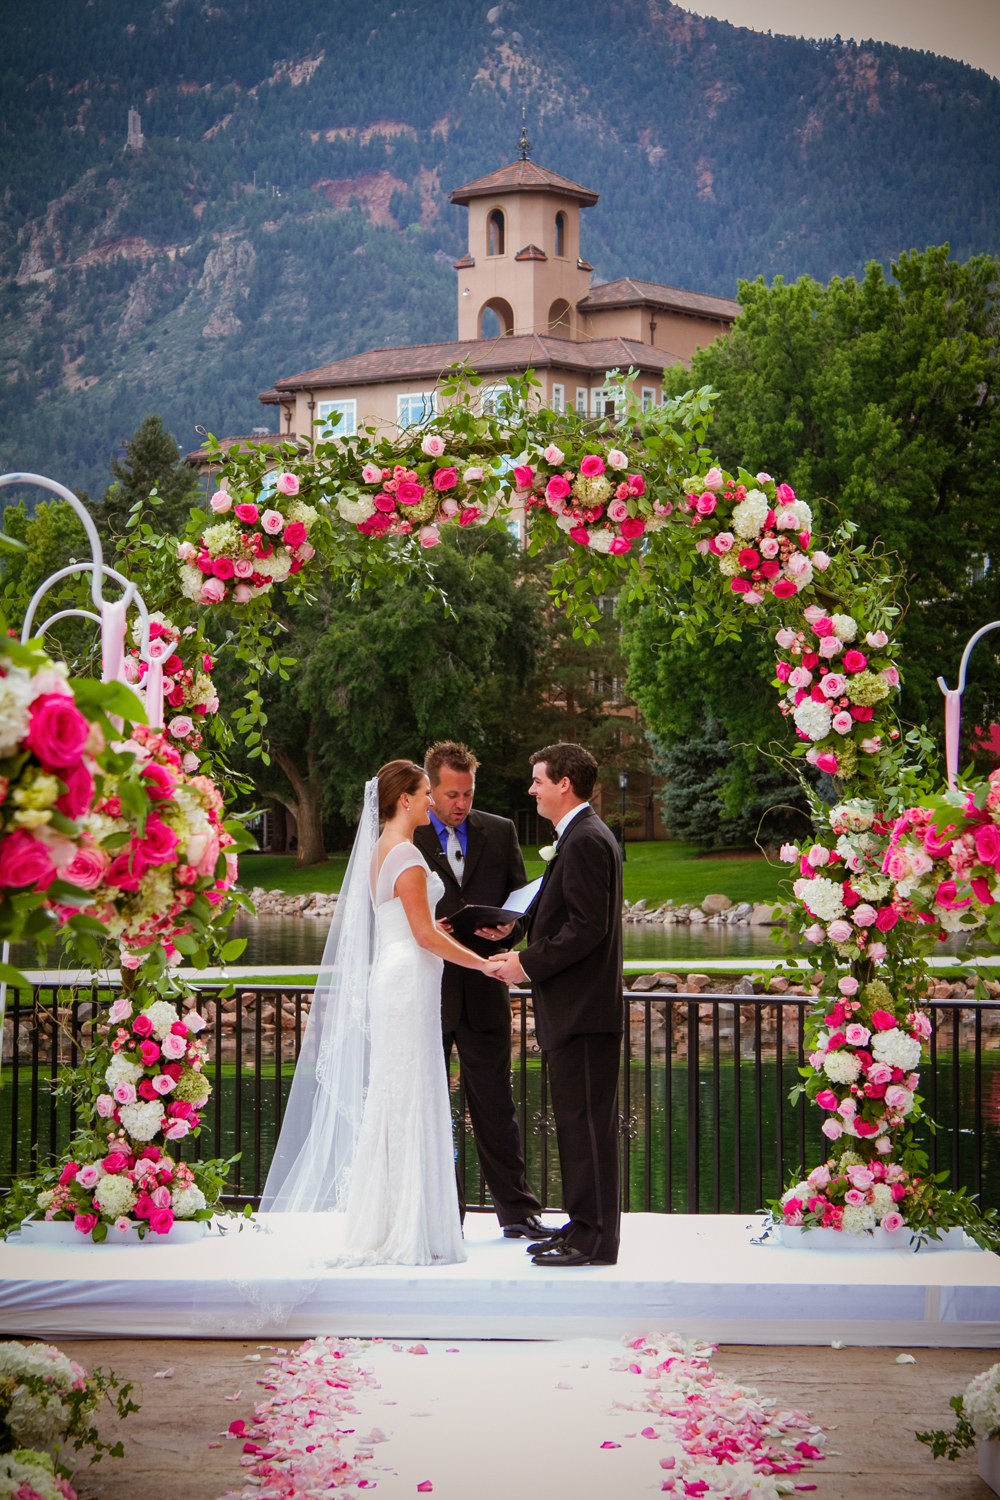 PaigeEden_Weddings_Broadmoor_021.jpg